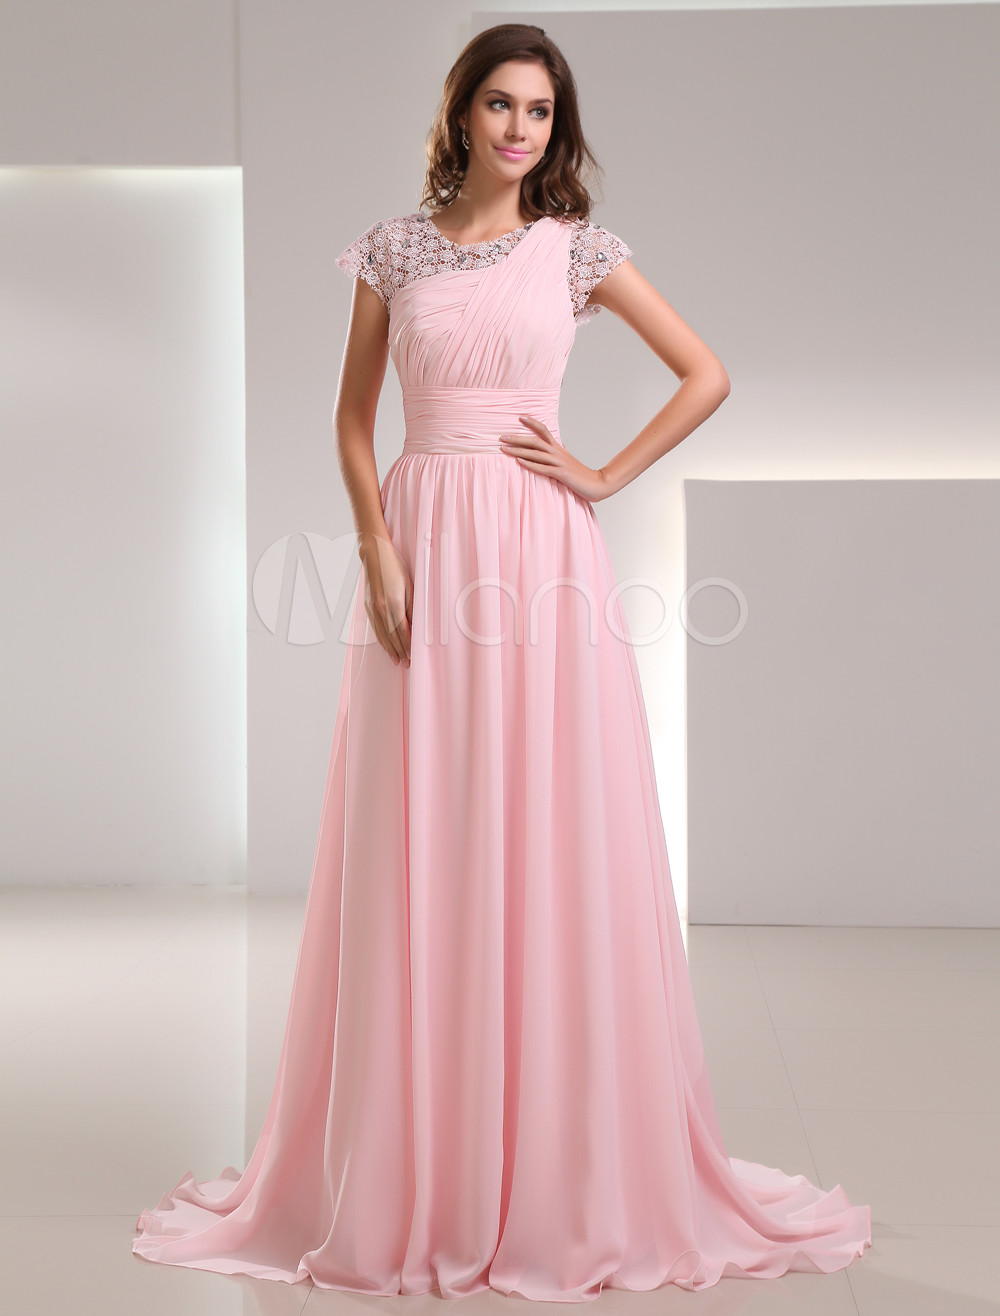 Buy Sweet Pink Chiffon Lace Jewel Neck Fashion Evening Dress for $139.99 in Milanoo store